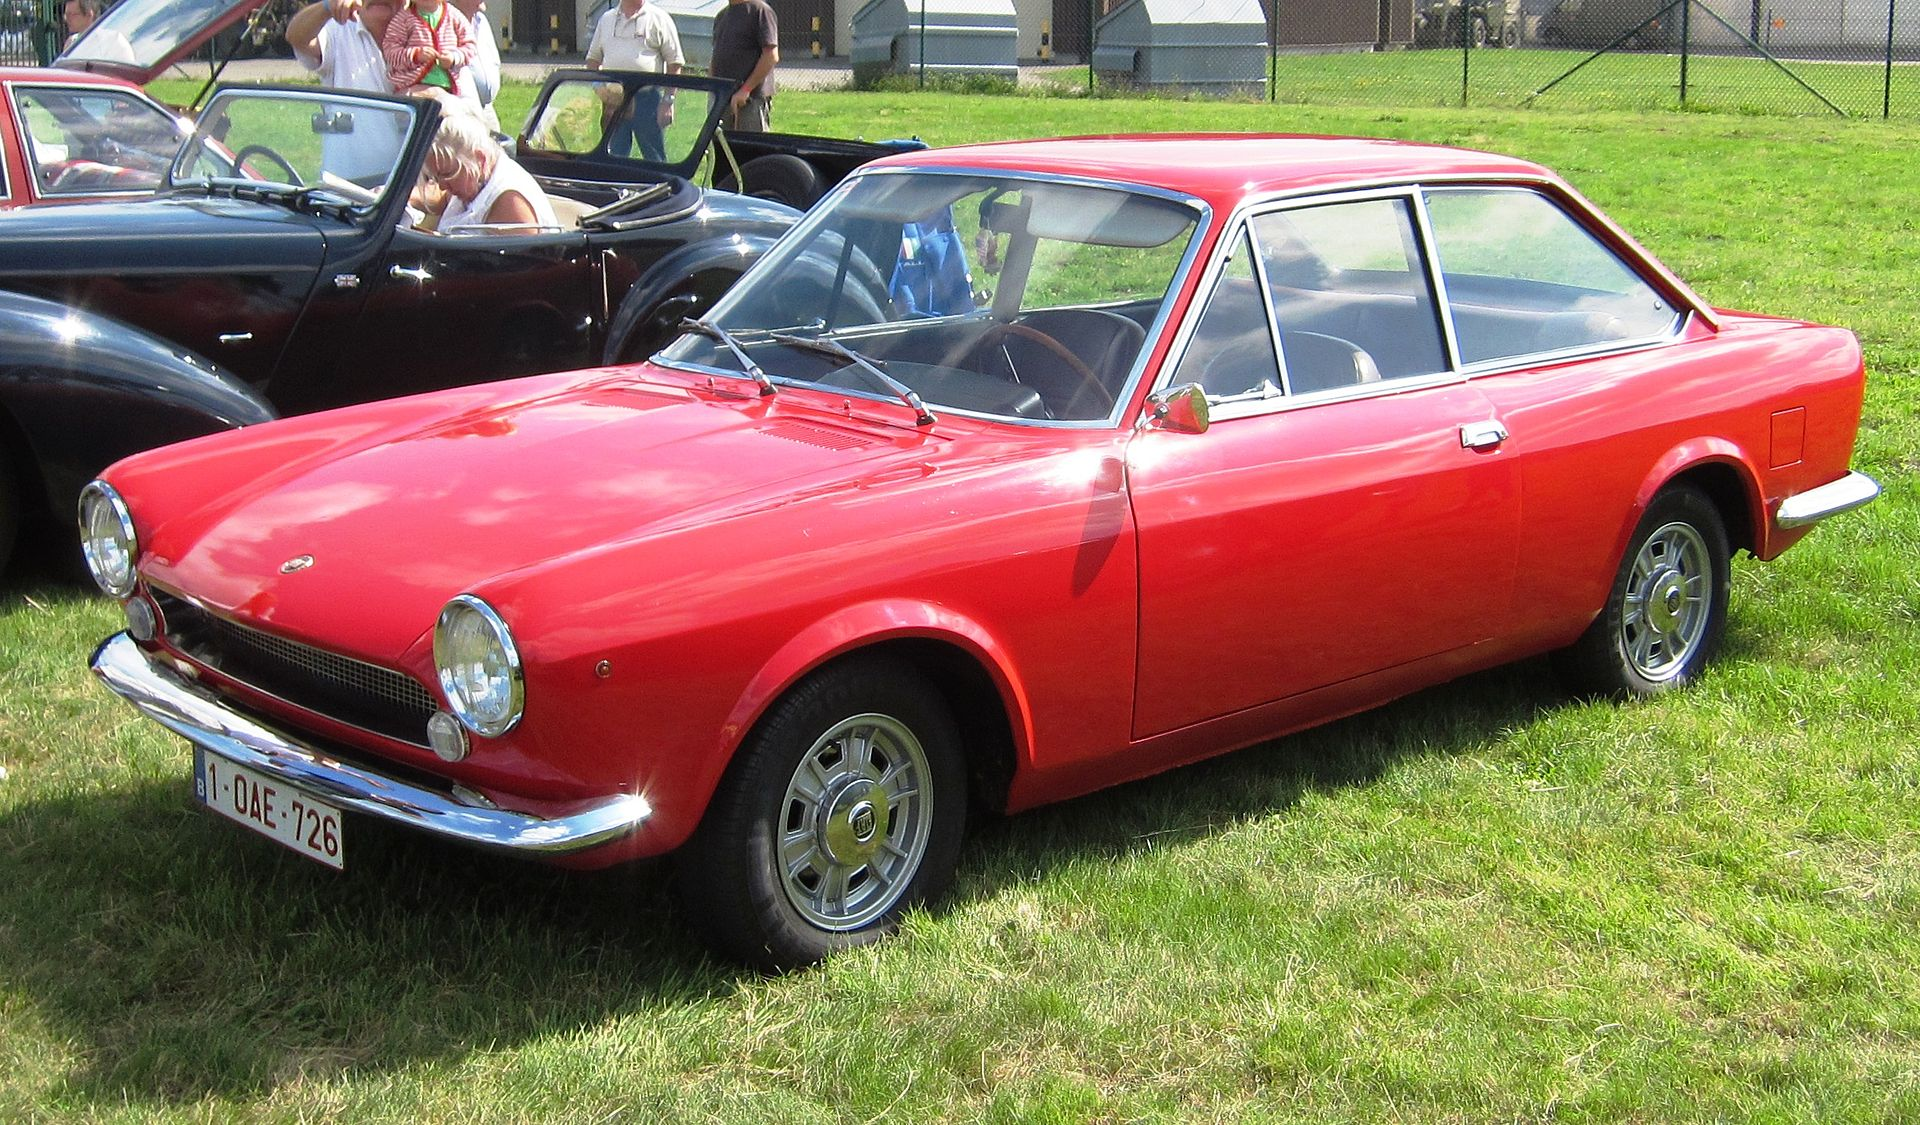 Fiat 124 sport coup wikipedia - 1969 fiat 124 sport coupe for sale ...